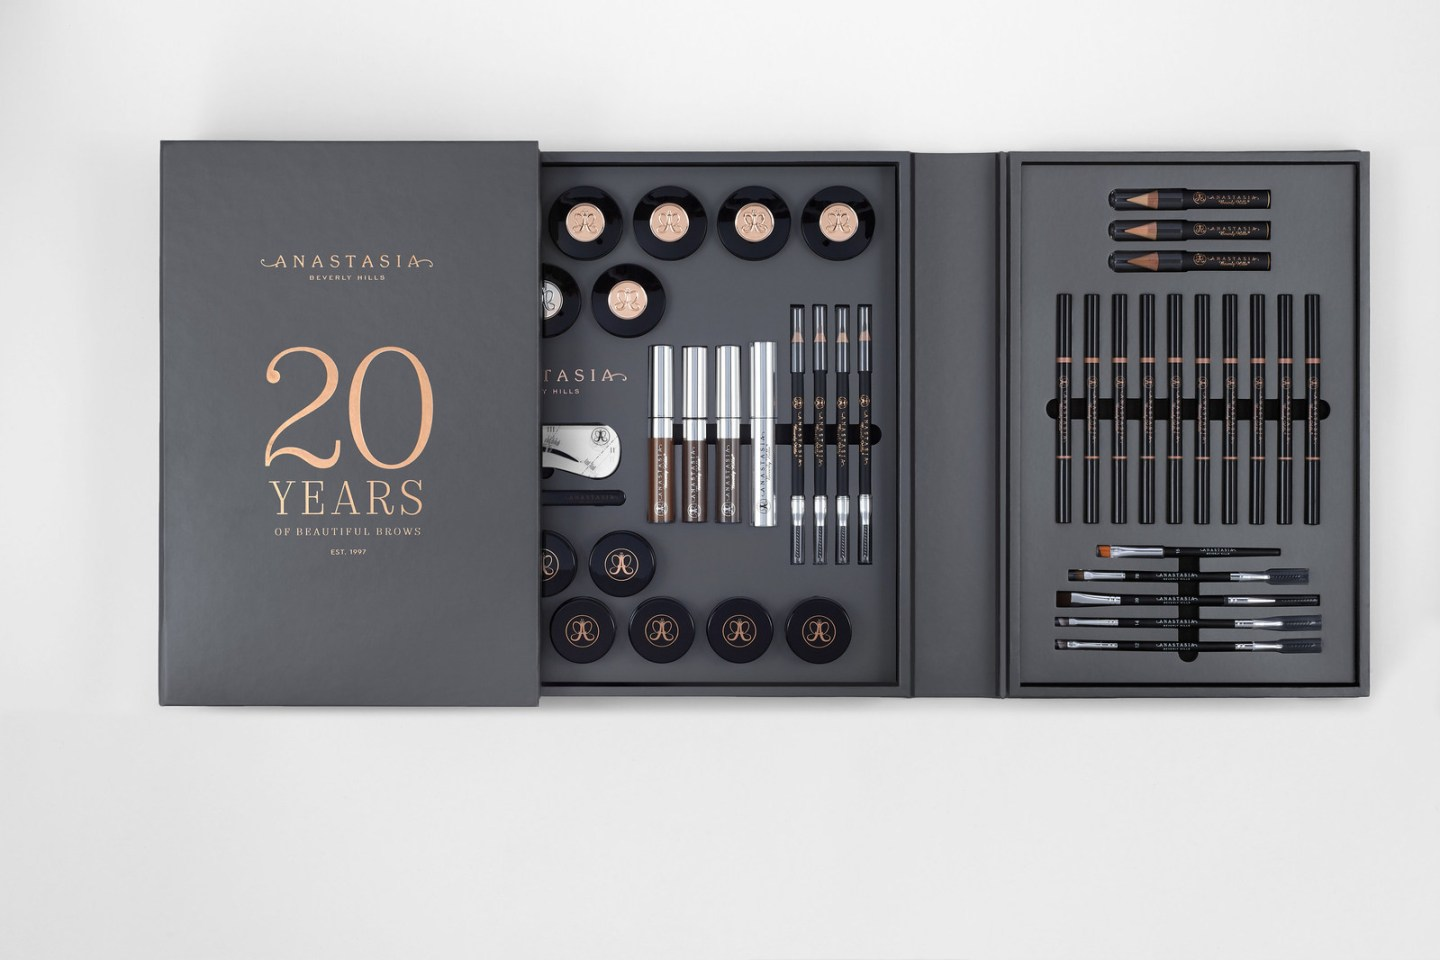 Anastasia Beverly Hills Celebrates 20 Years + Giveaway!